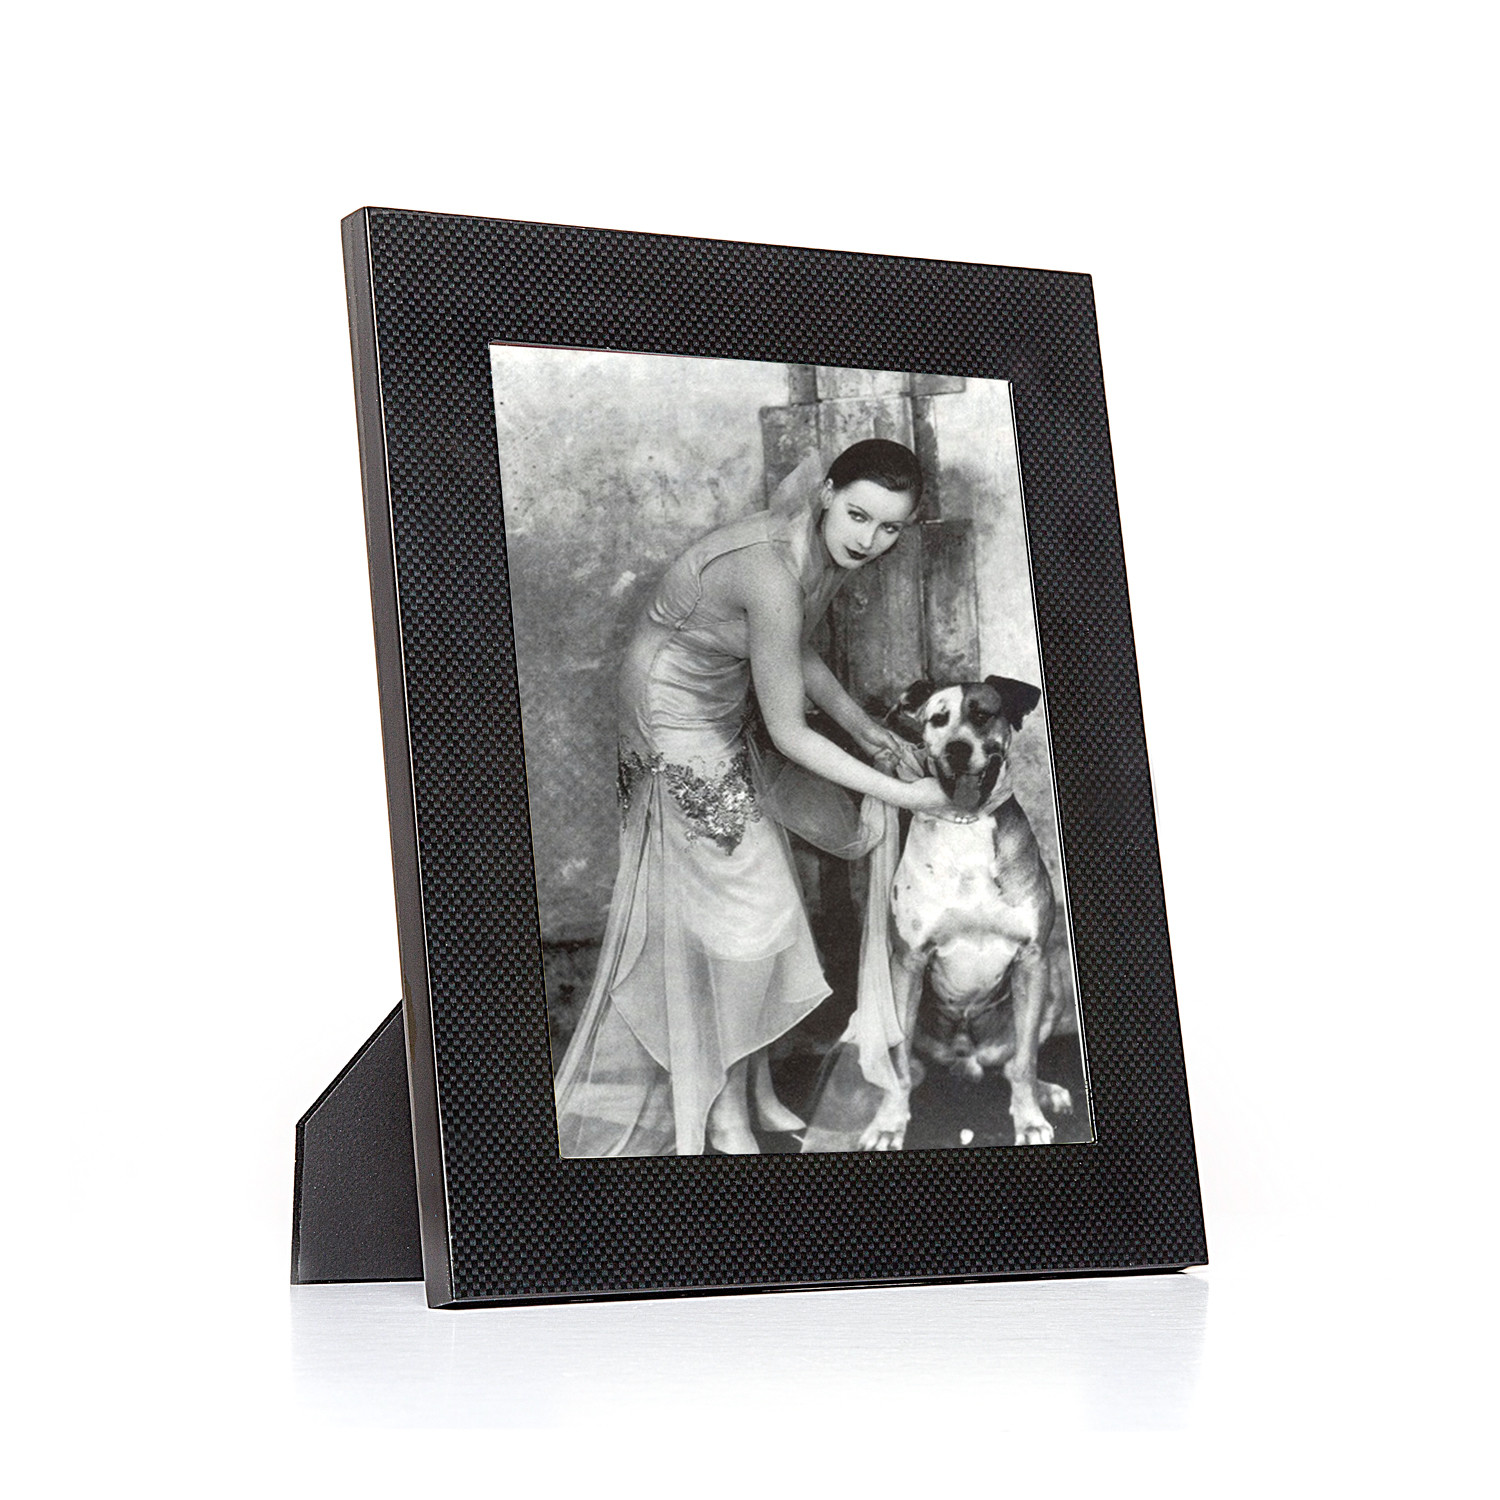 The Carbon Fiber Picture Frame  5  x 7     Clearance  Home Decor     45d7cbcee62f5f42834a5f23e5244e4a medium